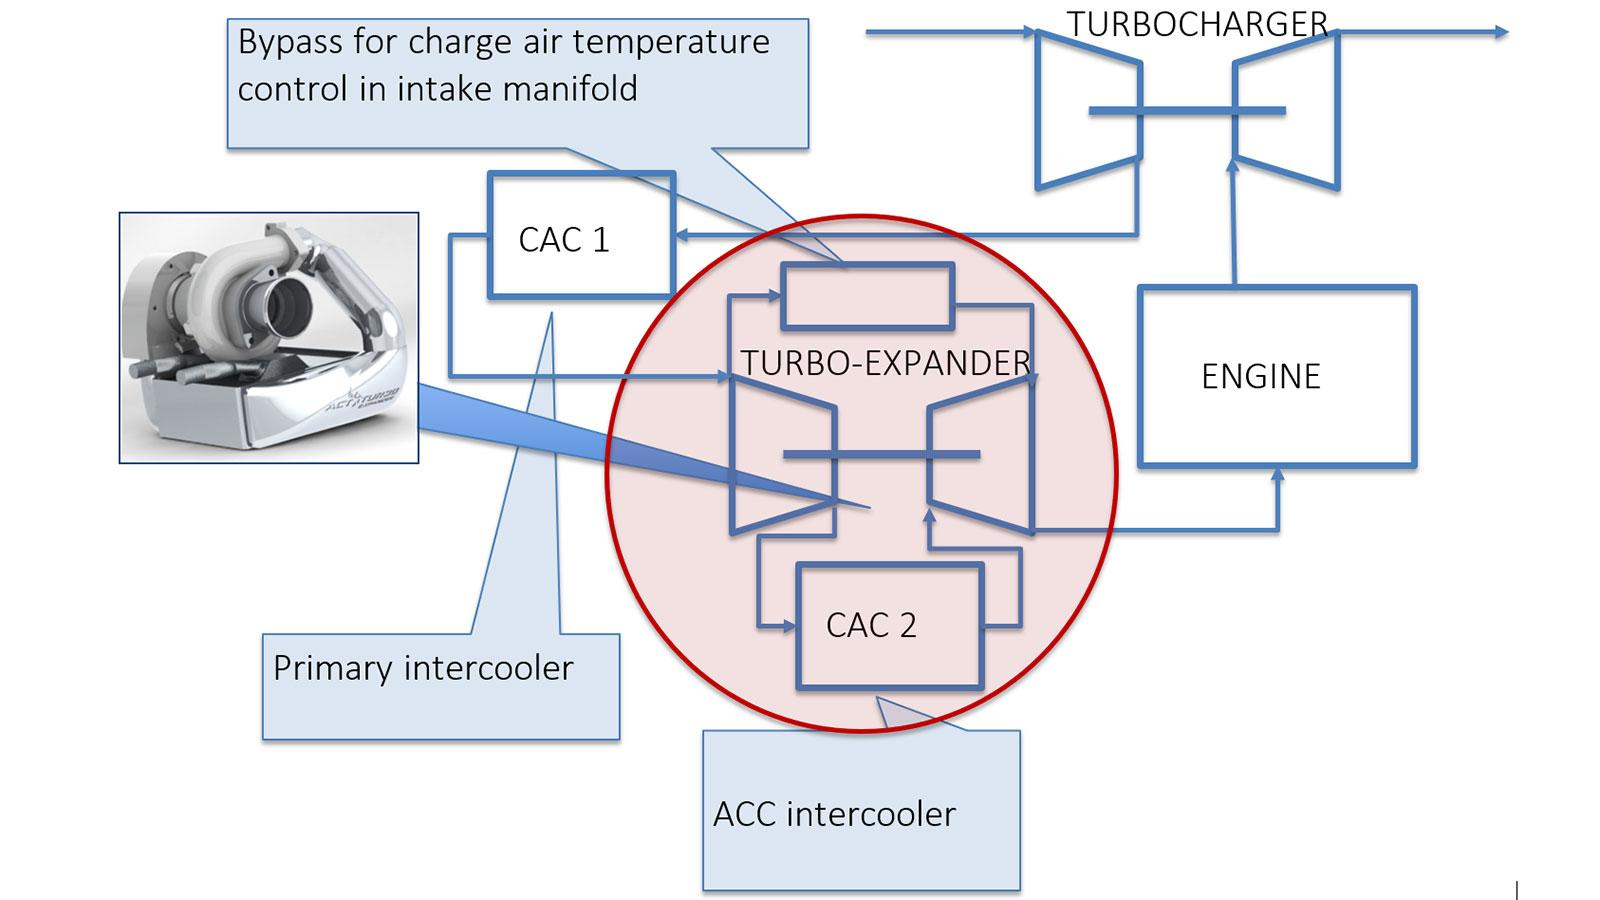 How Does Active Charge Air Cooling Work Cycle Technology. Active Charge Air Cooling How Does It Work. Wiring. Intercooler Engine With Turbocharger Diagram At Scoala.co